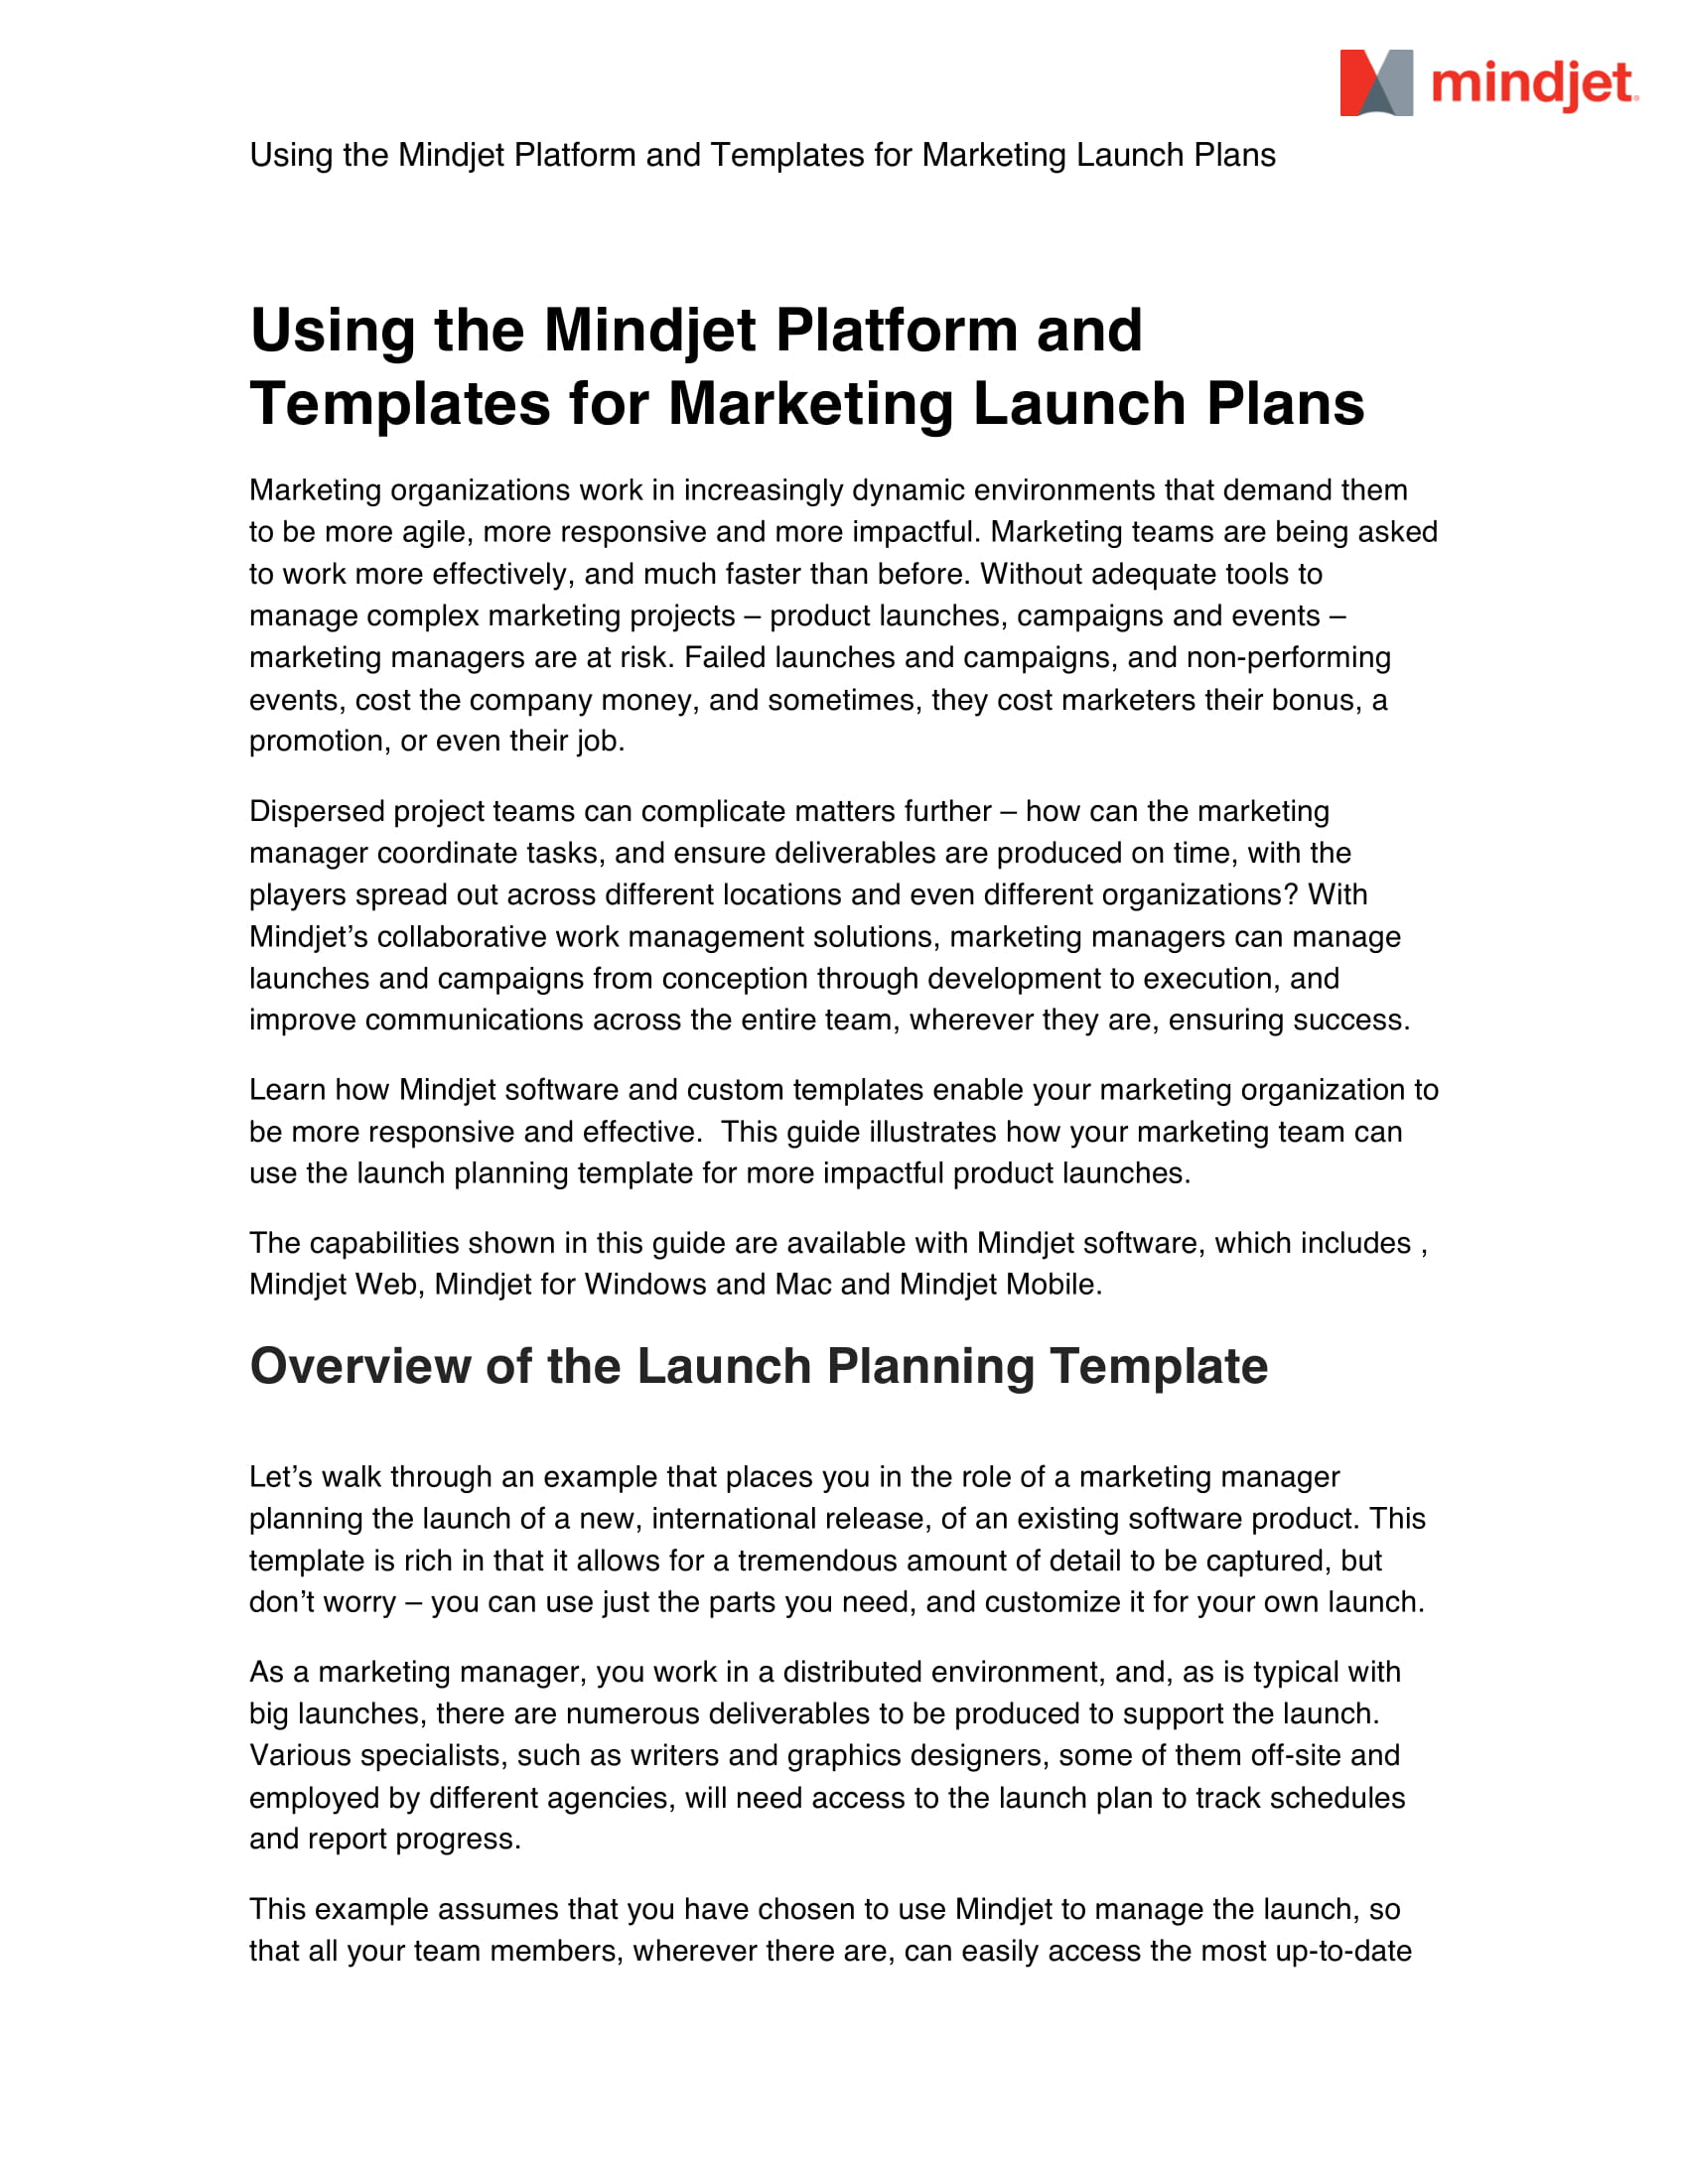 marketing launch plans for a new product example 01